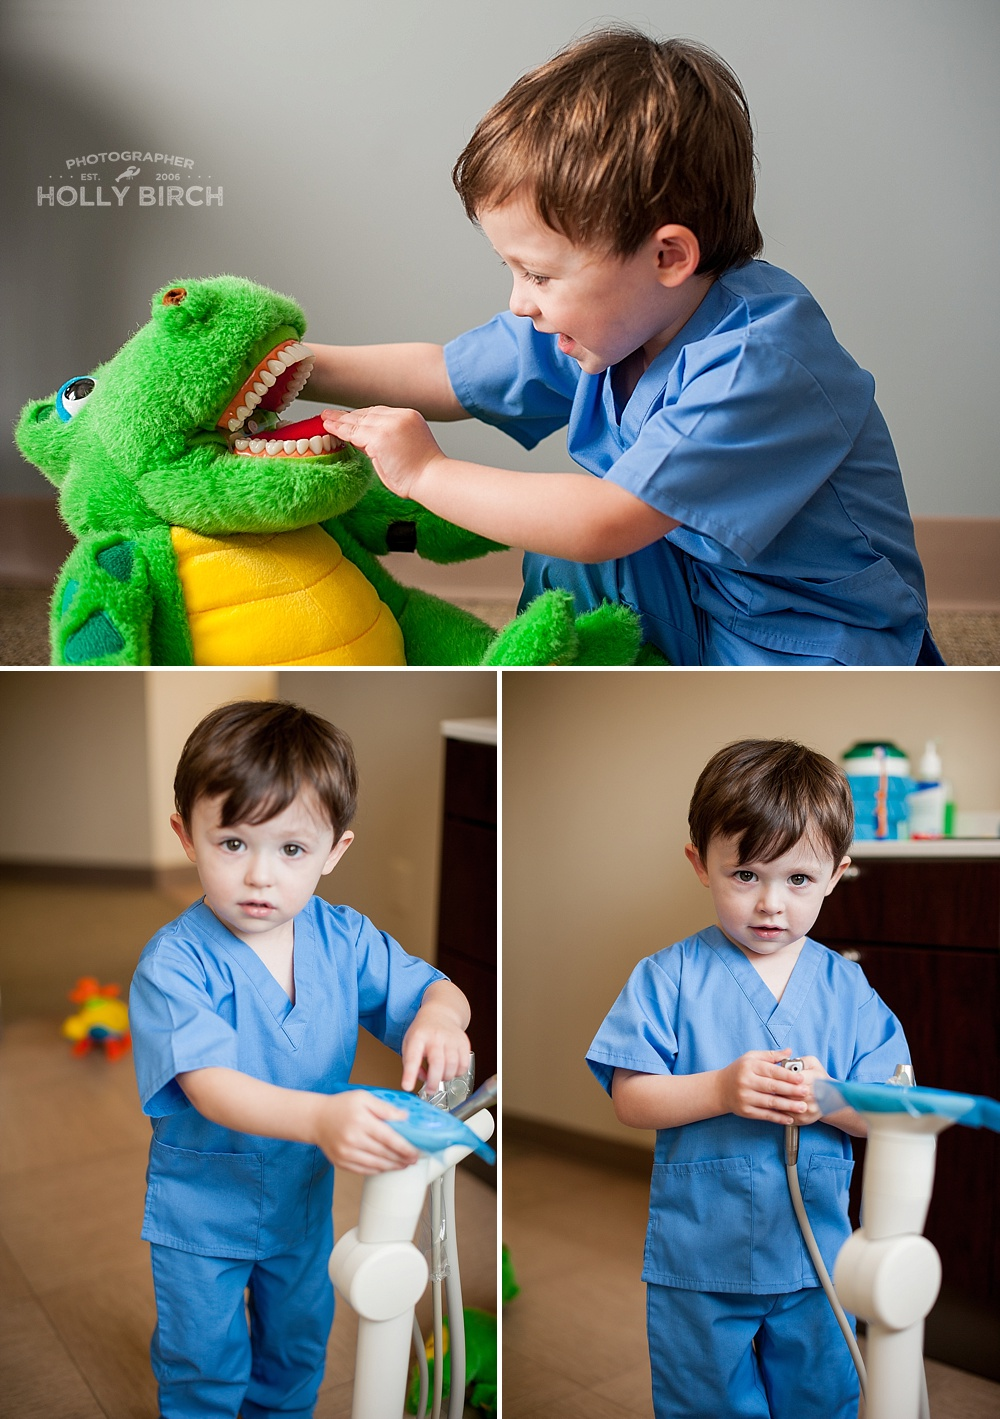 dentist themed kids photo shoot